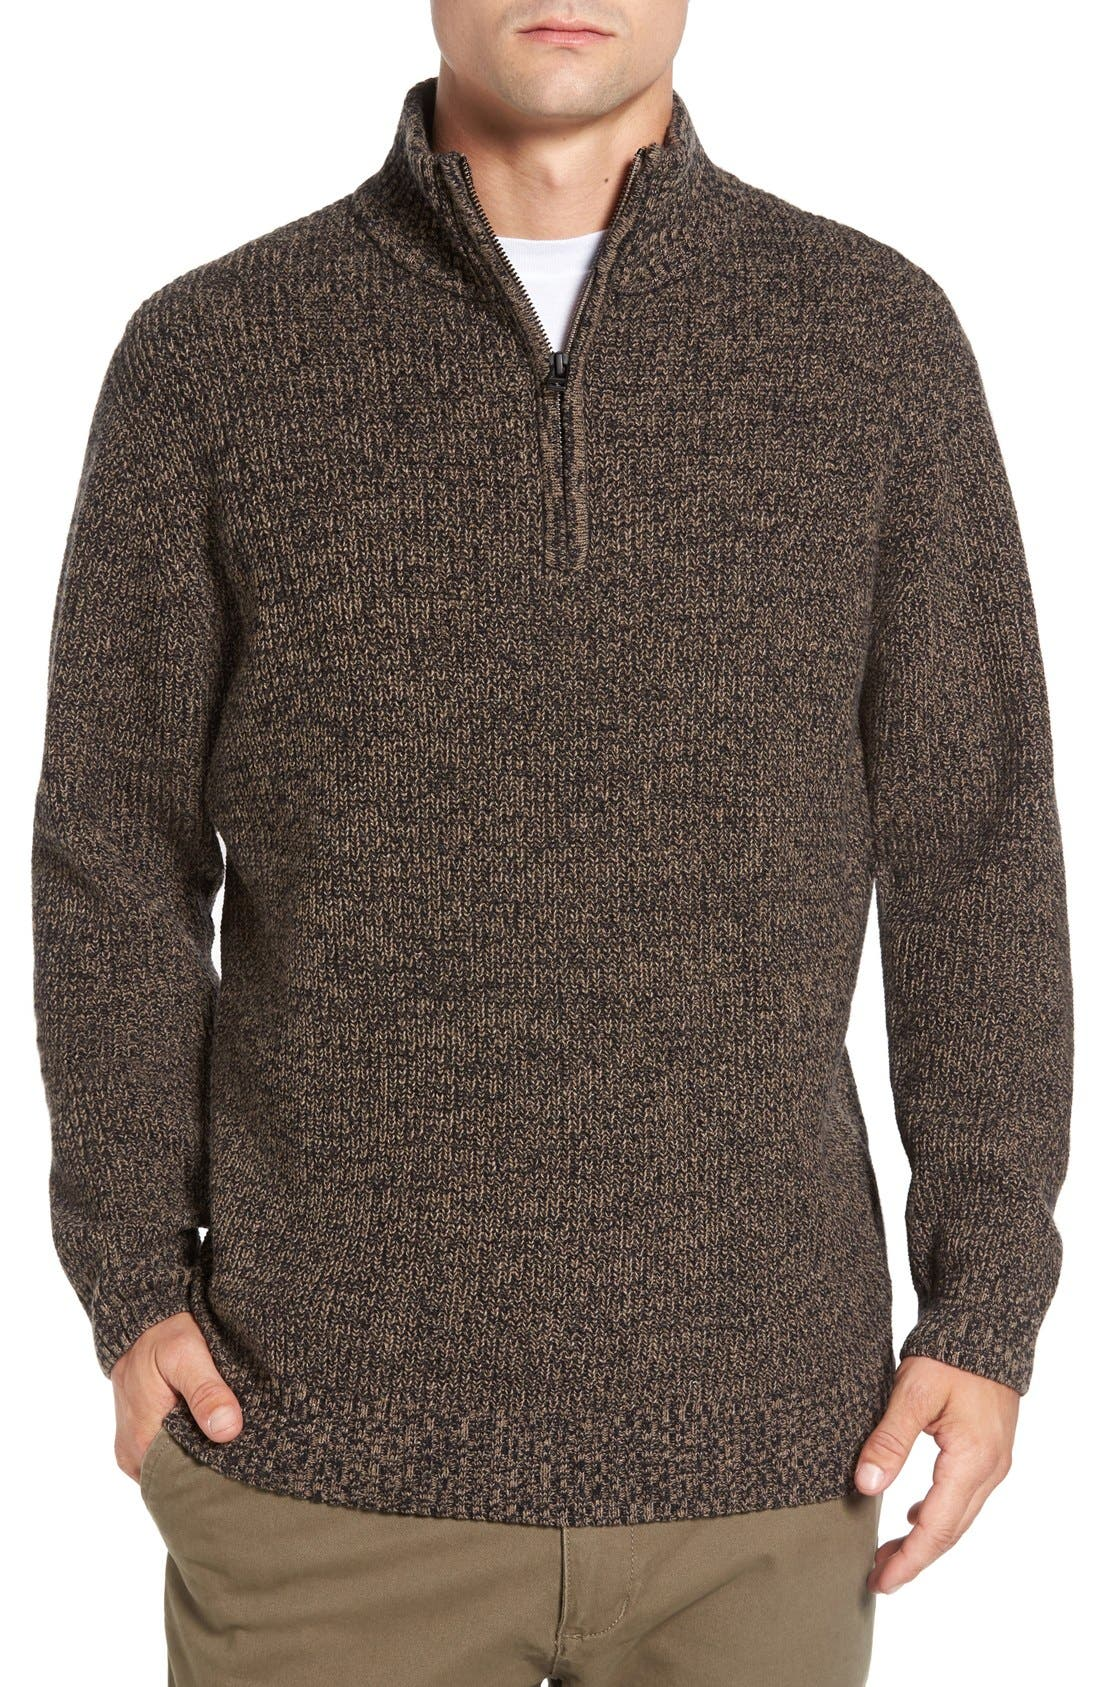 'Woodglen' Herringbone Knit Lambswool Quarter Zip Sweater,                         Main,                         color, 200